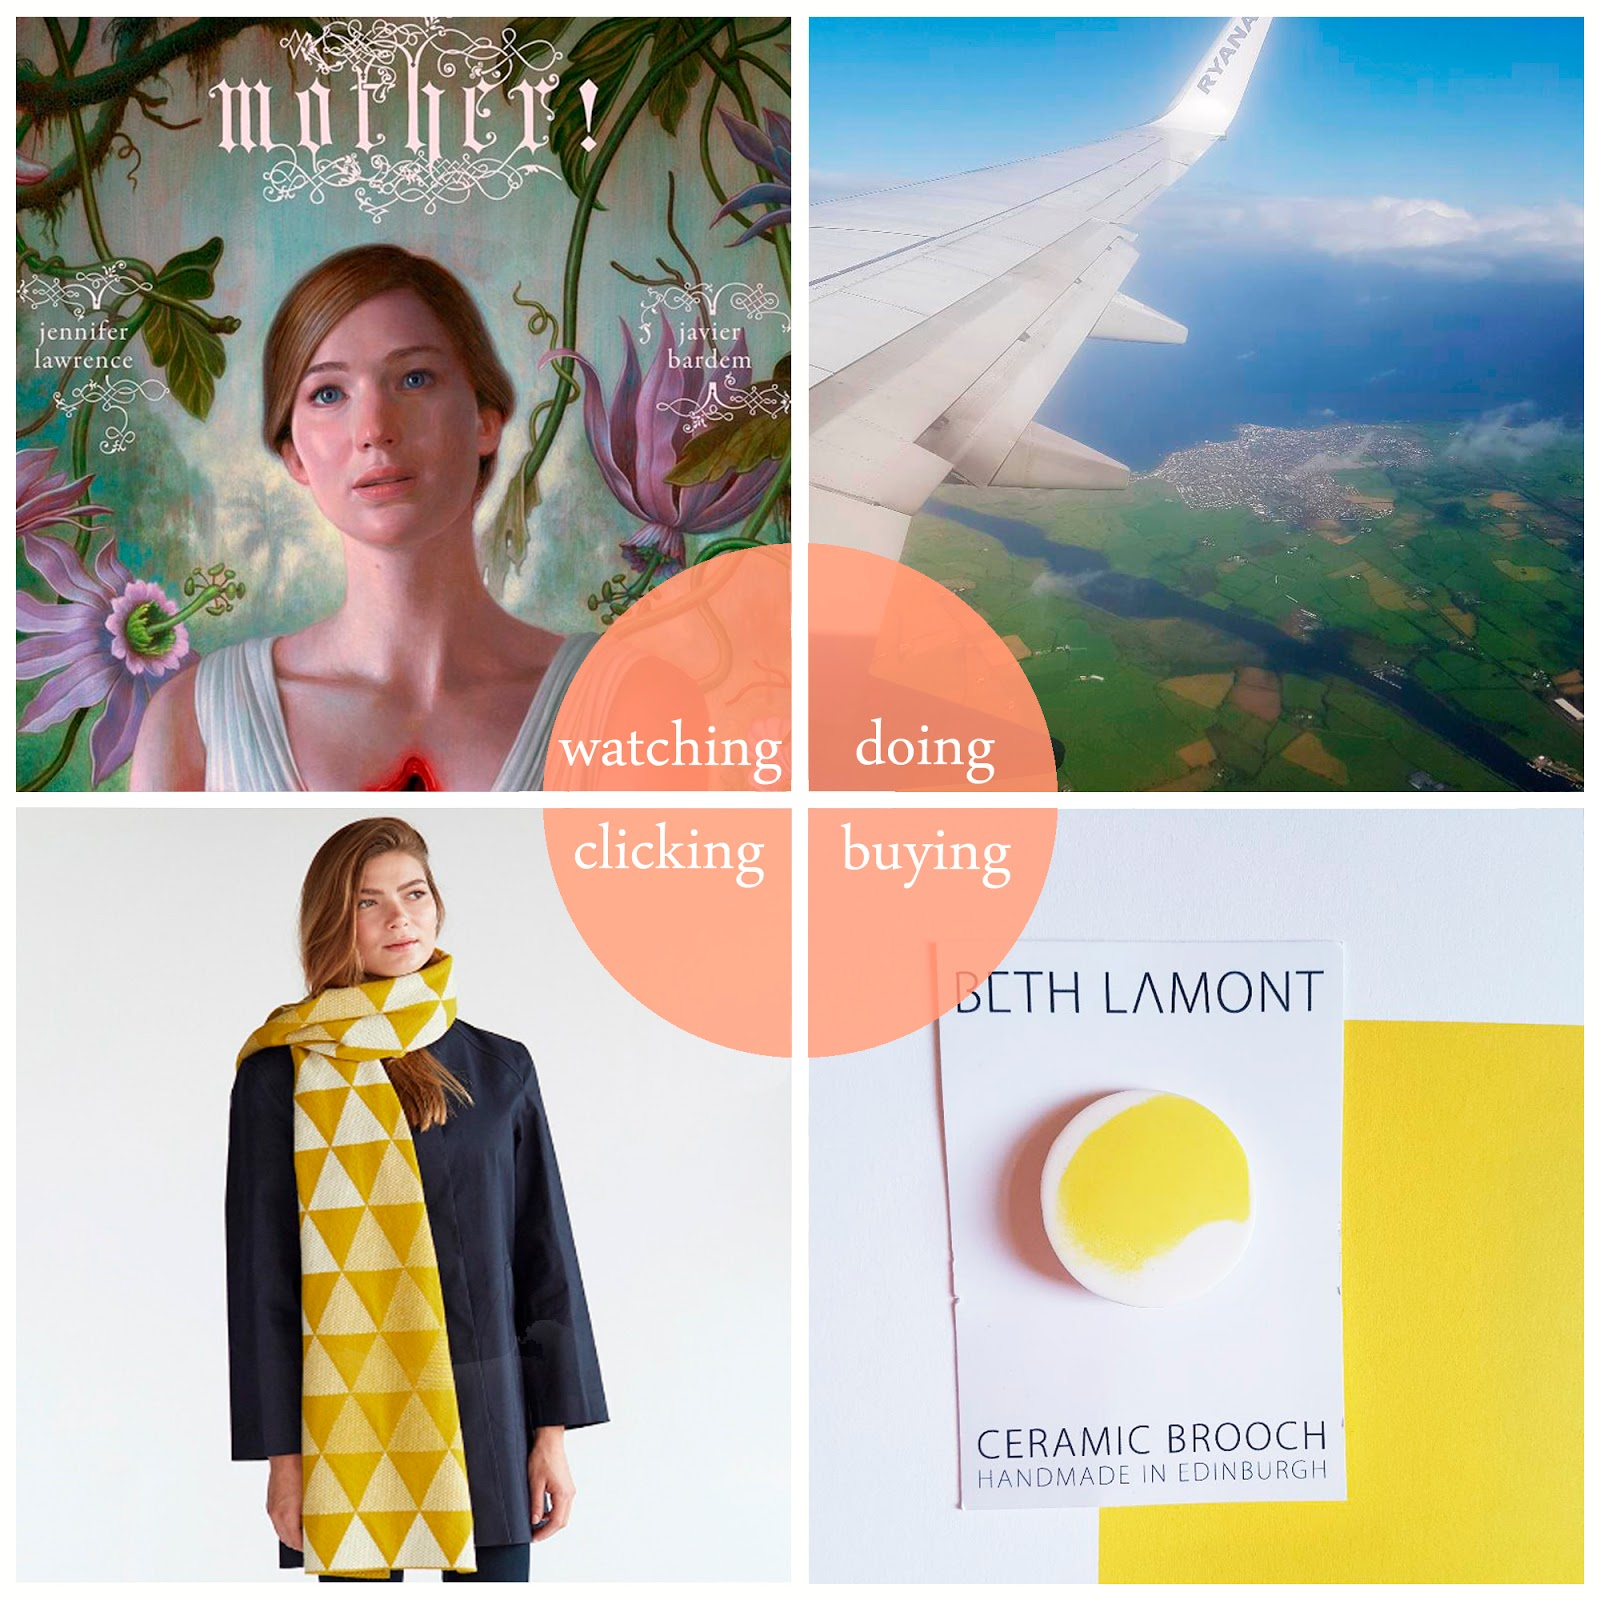 Blogger round up of September 2017 featuring Mother!, Northern Ireland, a Beth Lamont brooch and a yellow Hilary Grant scarf